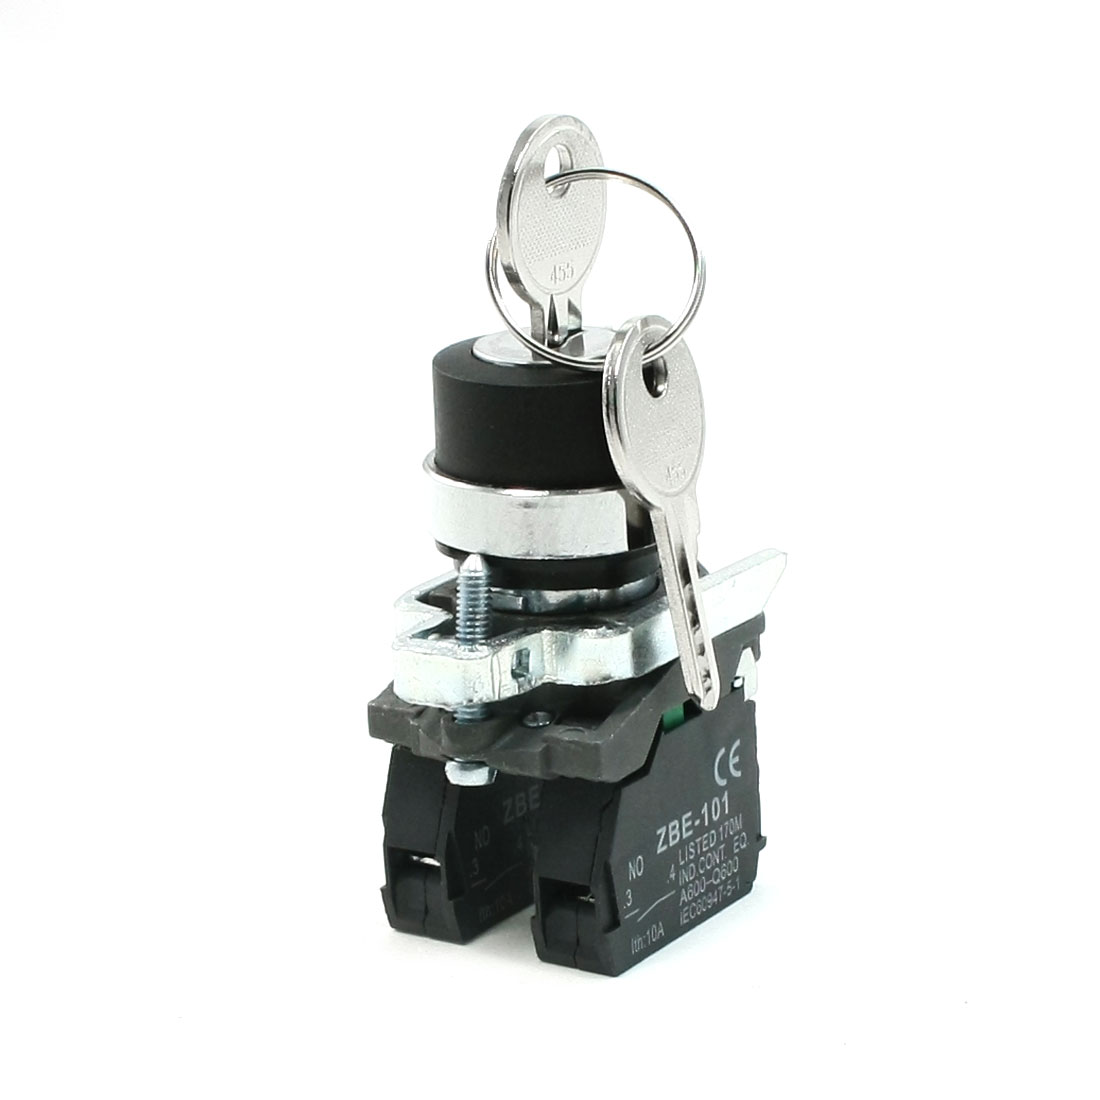 AC 240V 6A NO Key Rotary Key Locking Style Push Button Switch ZBE-101